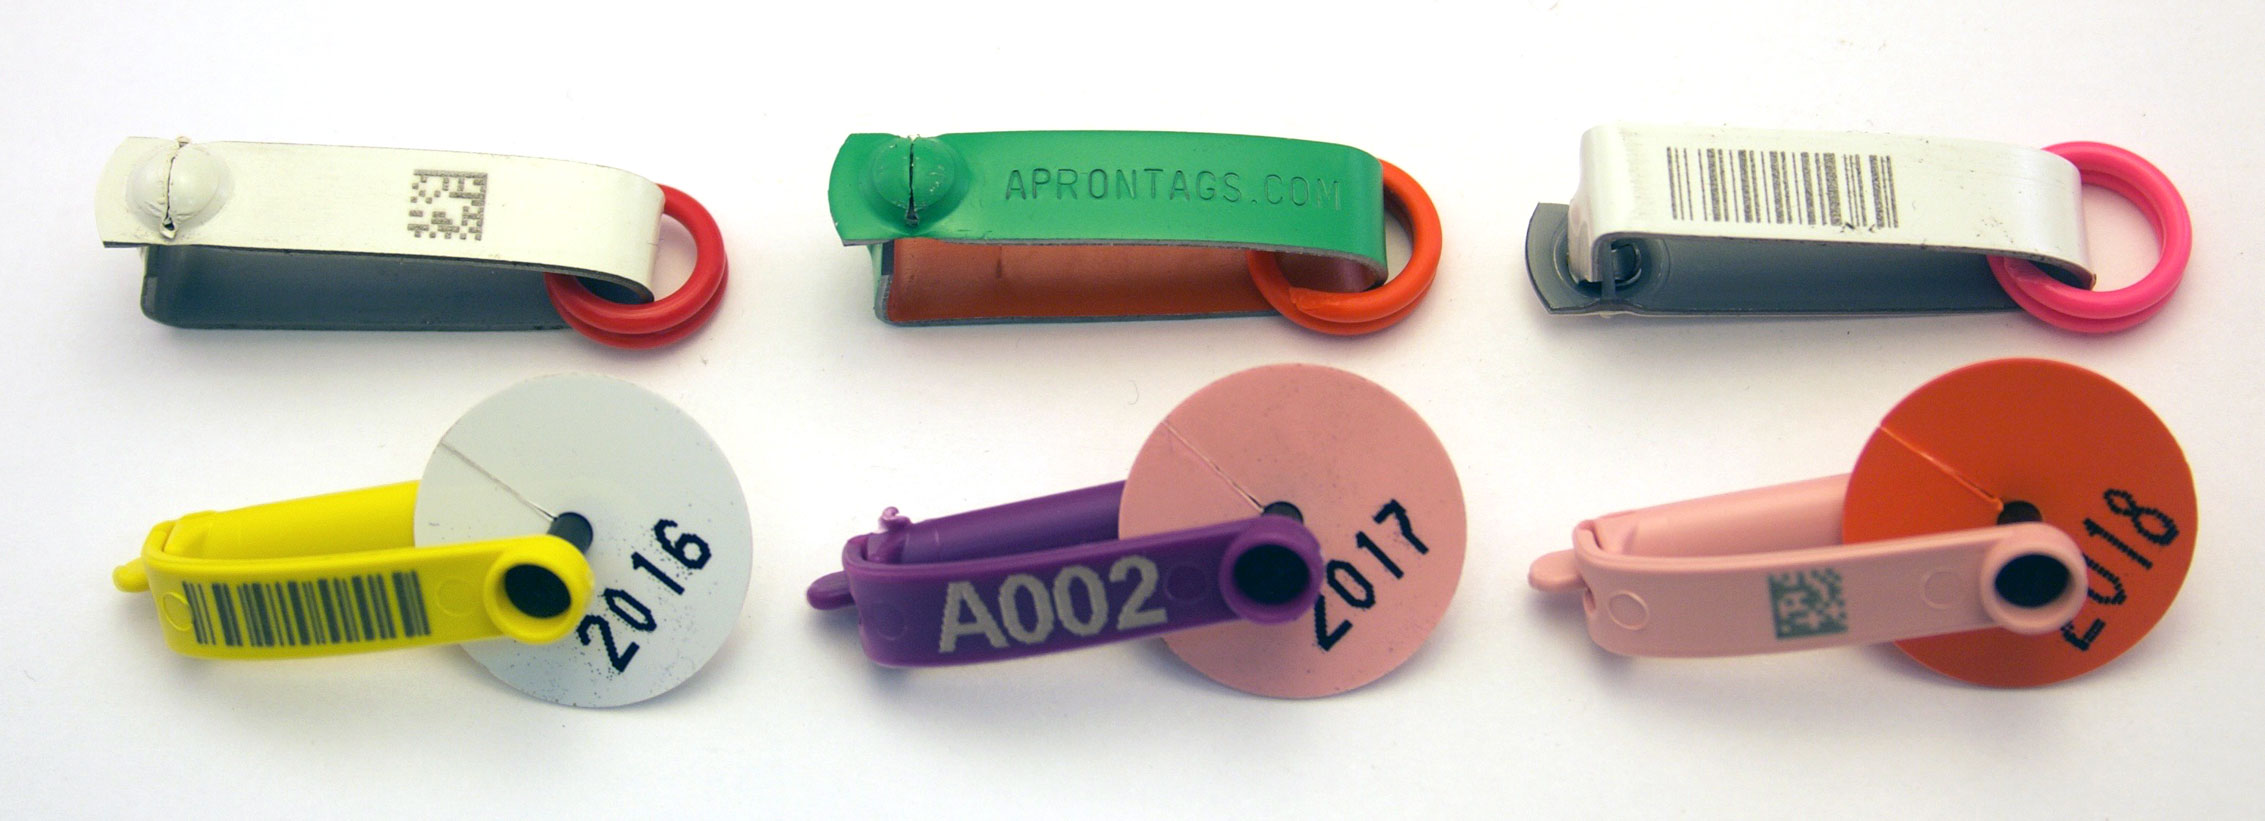 So long, Sharpie! - Lead Apron Tags - National Band & Tag Co